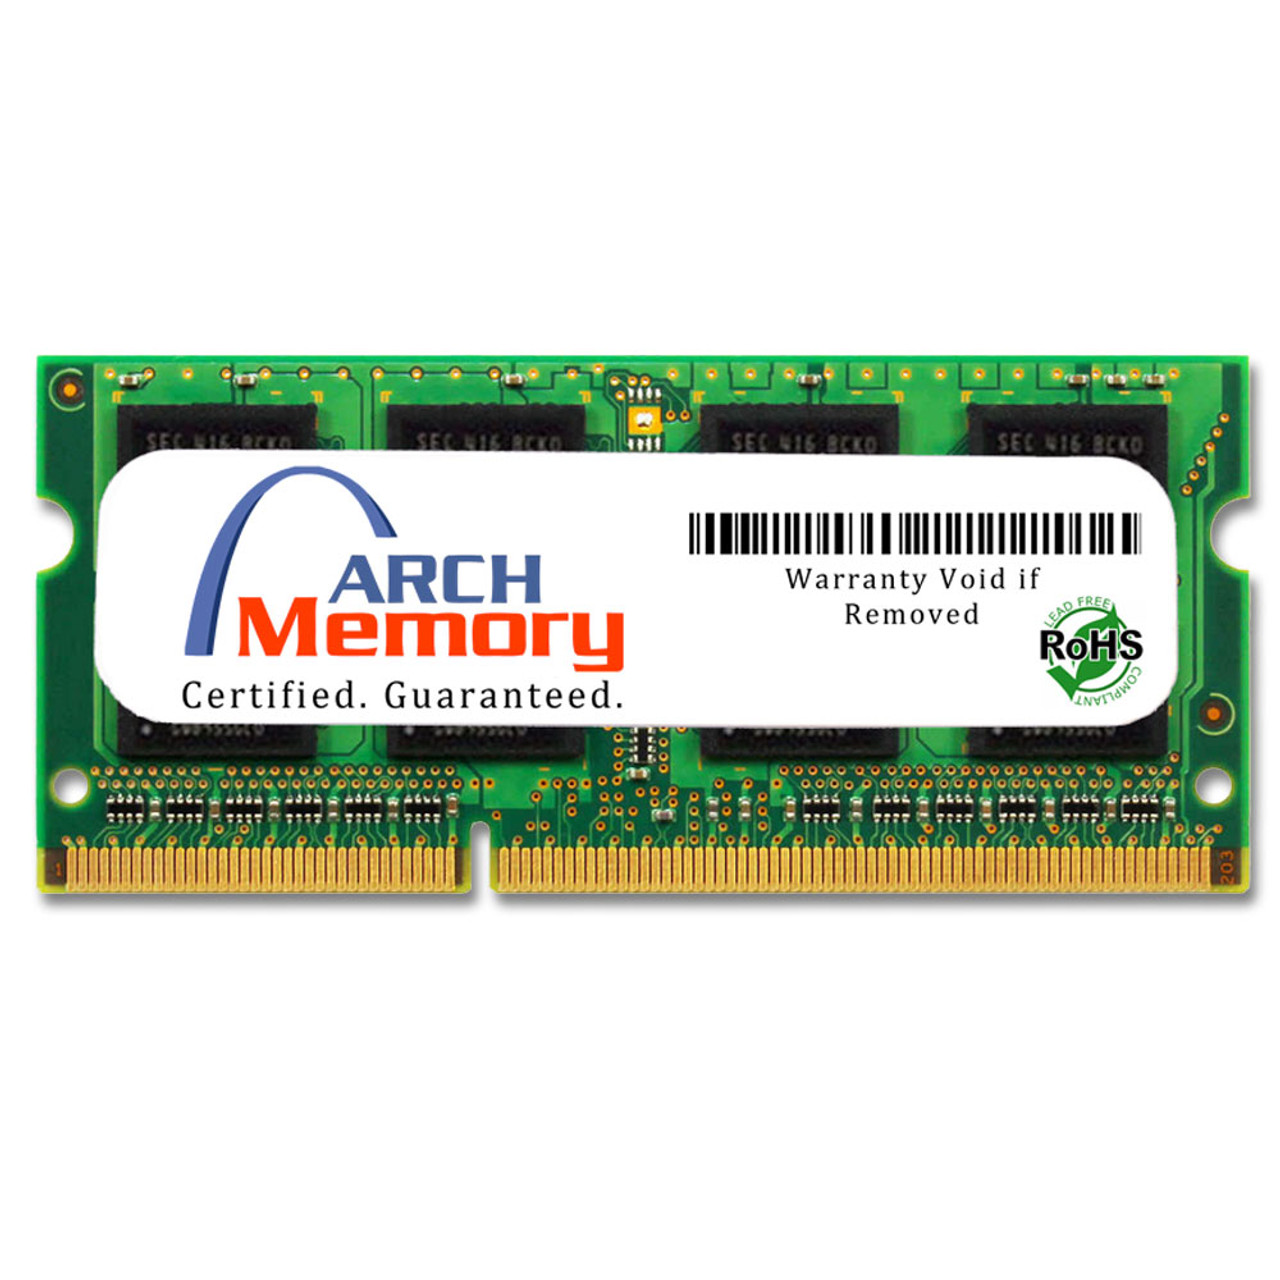 16GB 204-Pin DDR3L-1600 PC3L-12800 1.35v Sodimm Ram